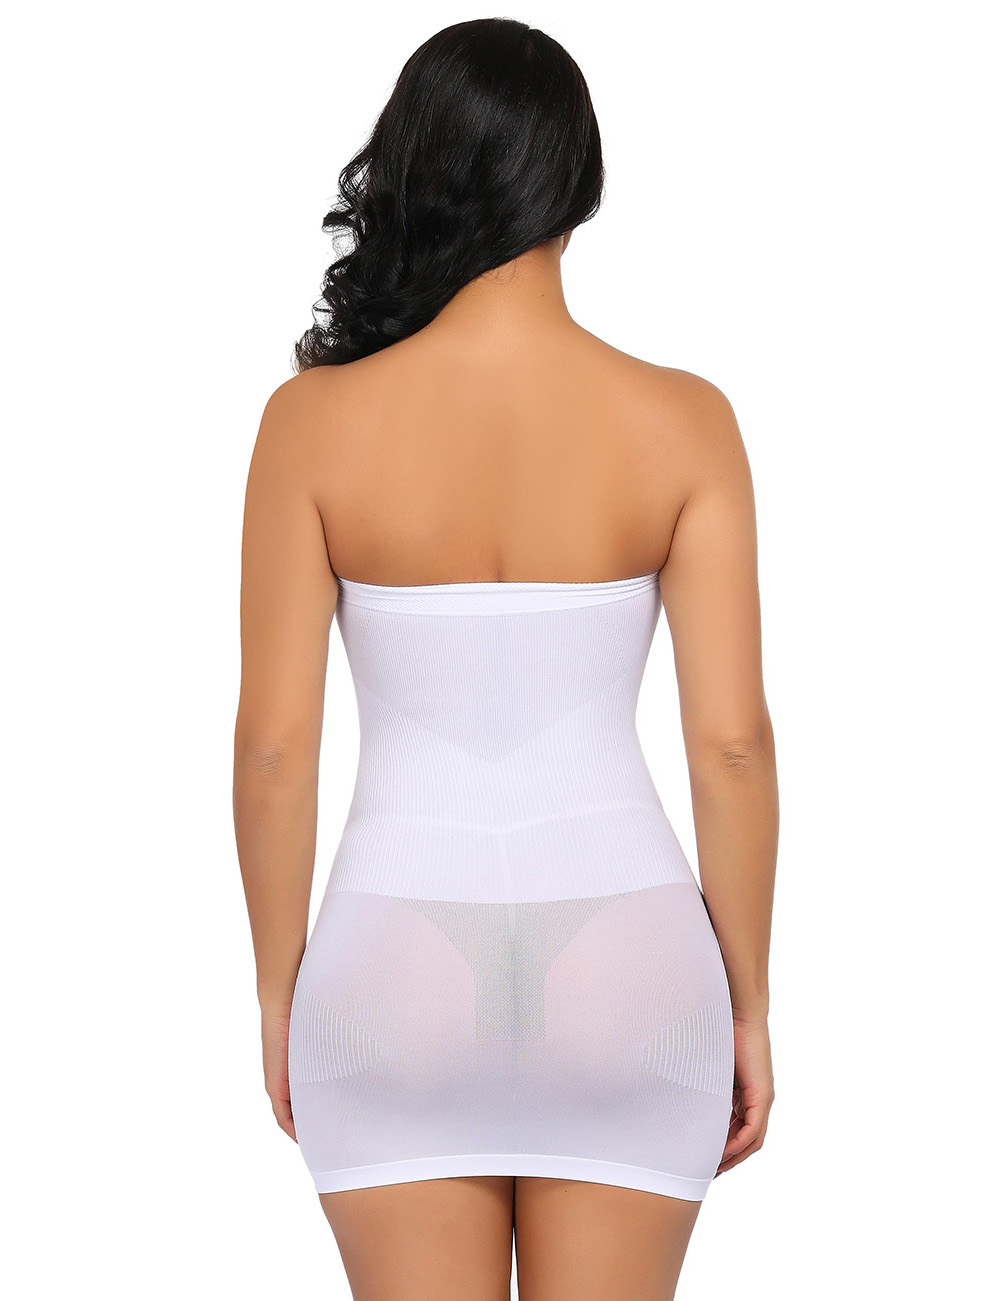 //cdn.affectcloud.com/feelingirldress/upload/imgs/Shapewear/Body_Shaper/LB6487/LB6487-201912245e01d7470f4b7.jpg